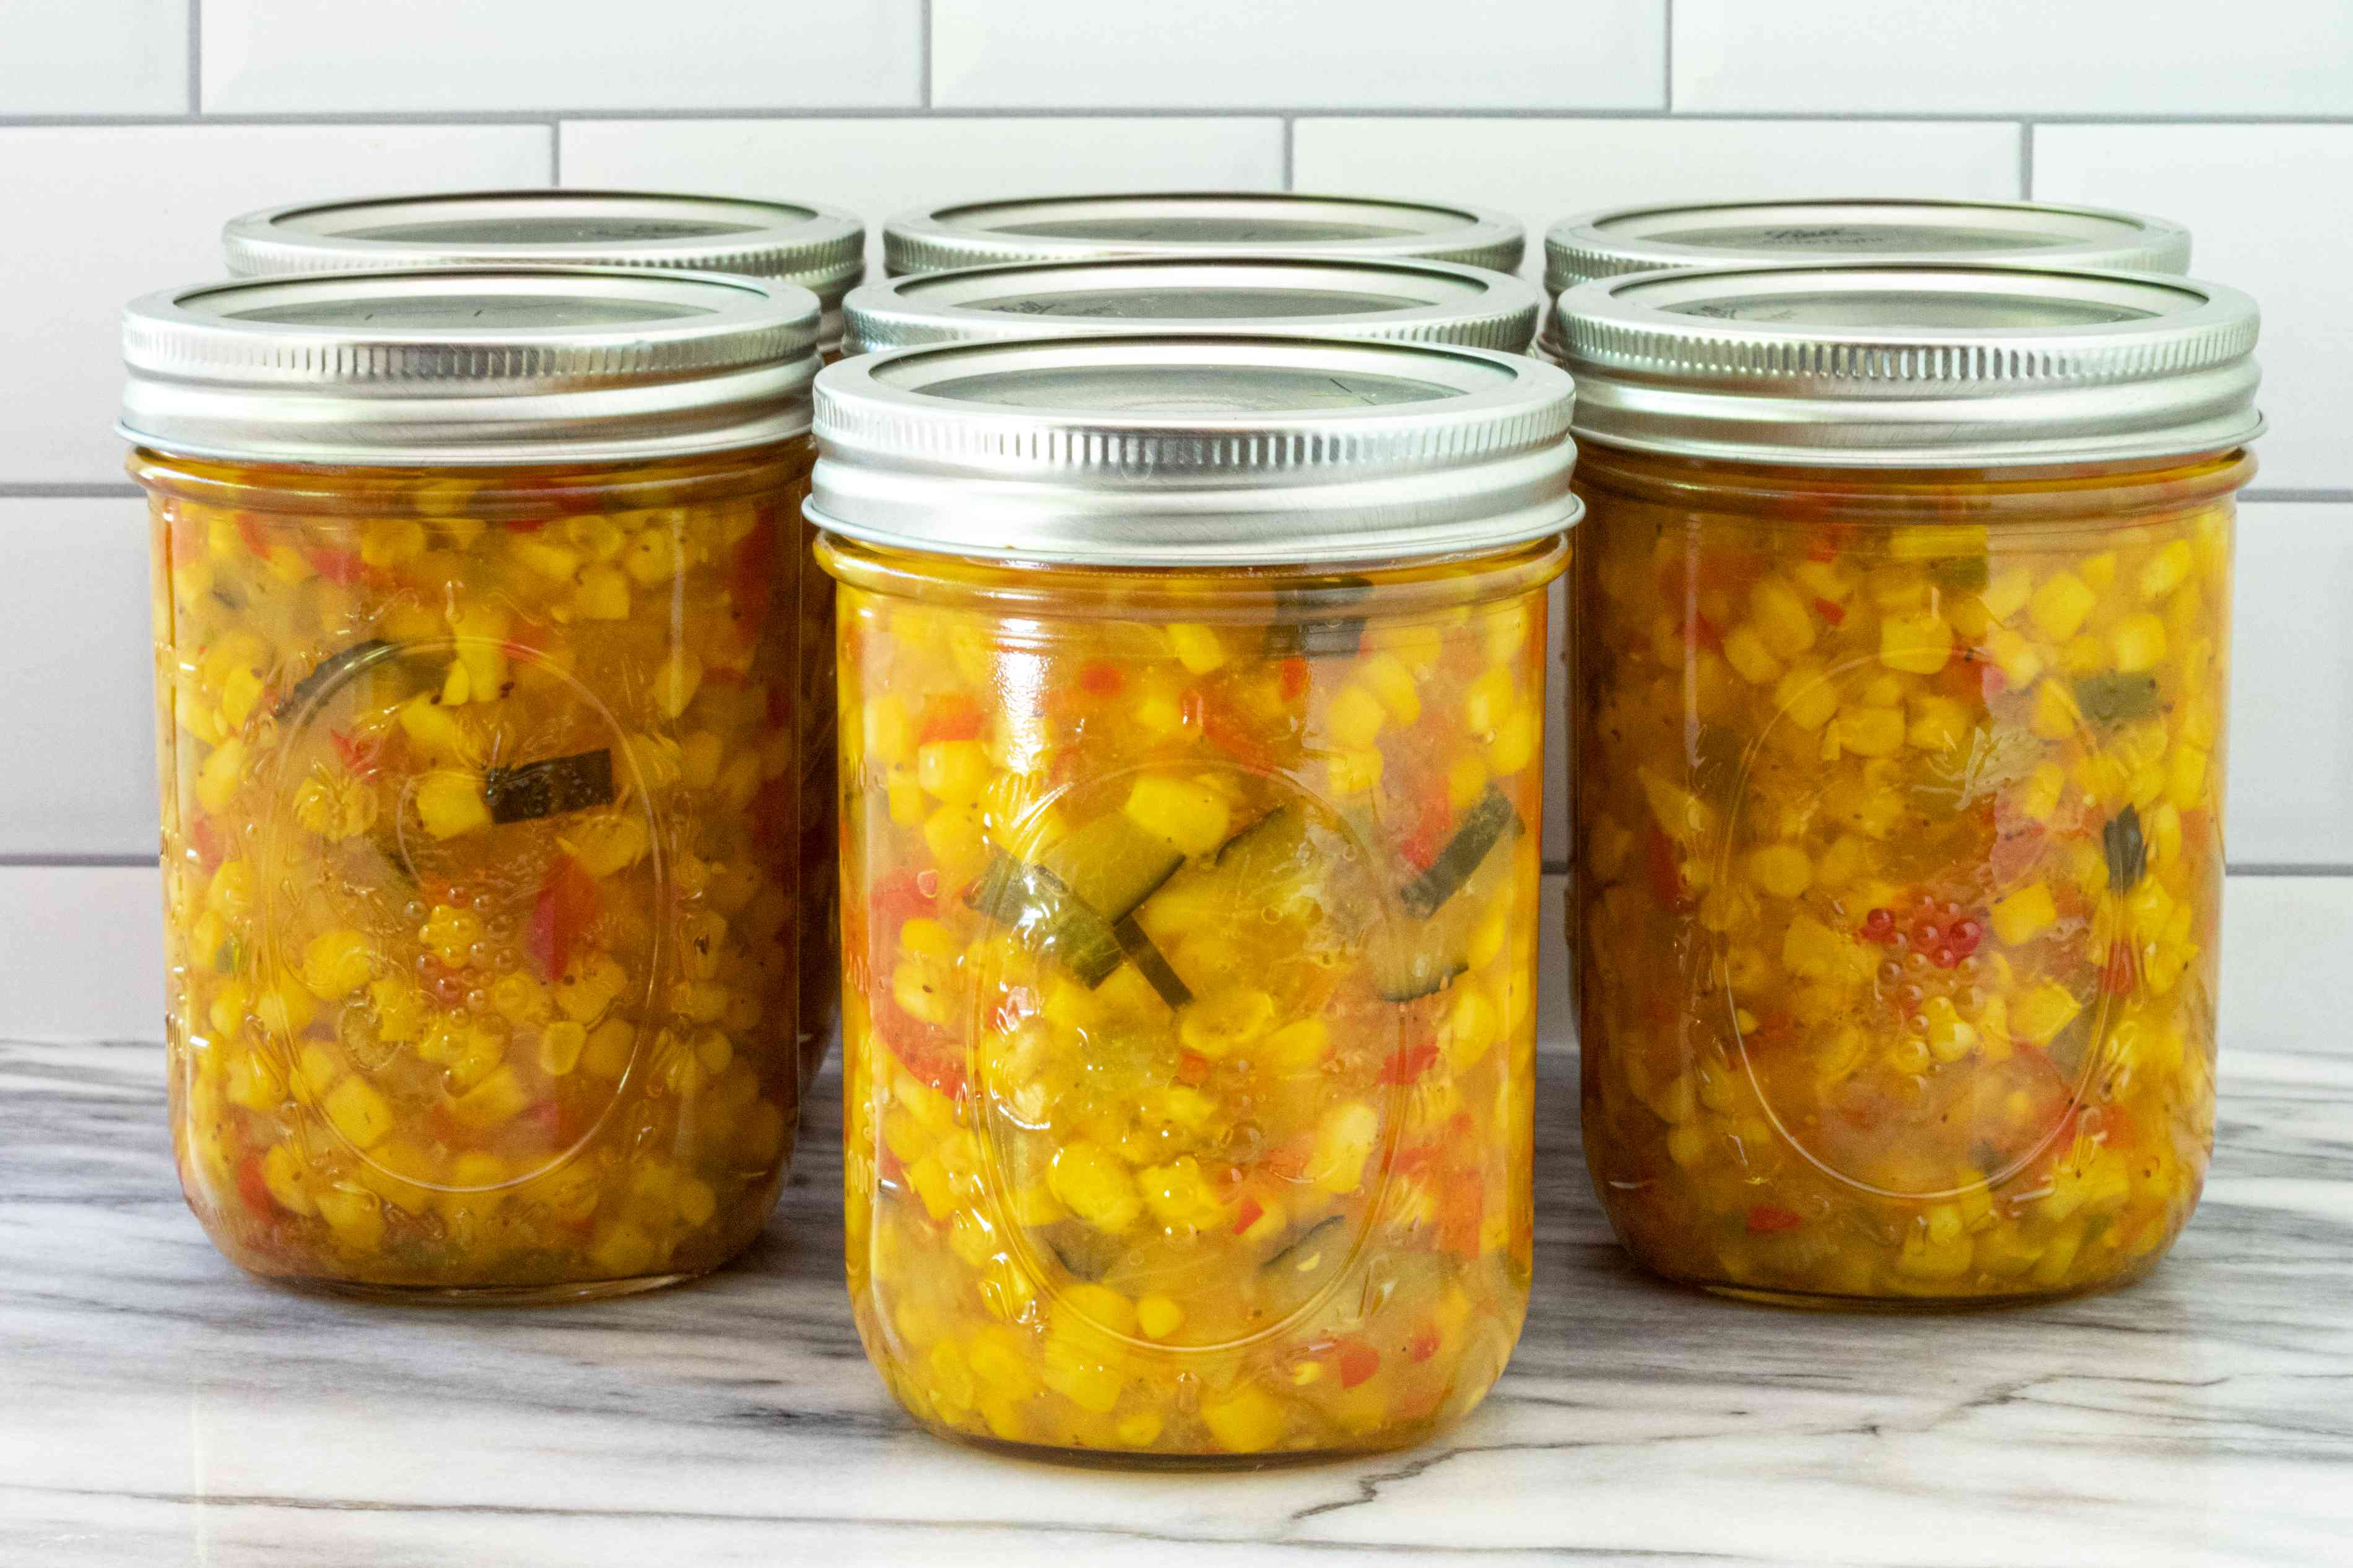 Seven pints of home canned corn relish.